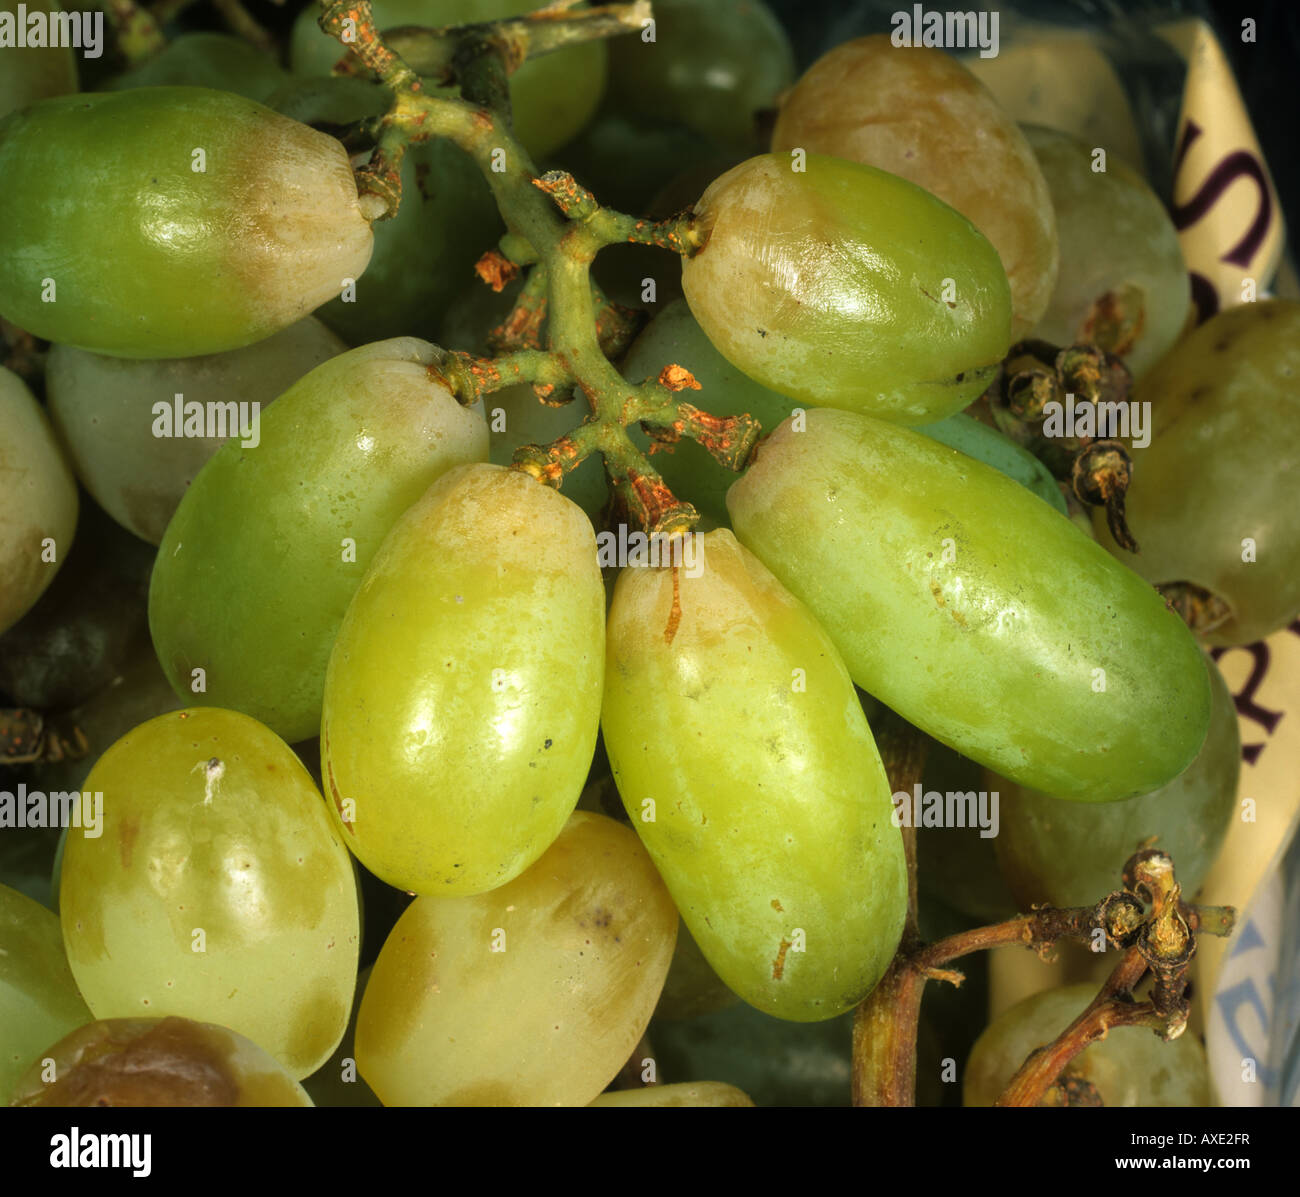 Sulphur dioxide bleaching of grapes sulphur dioxide is used as a preservative - Stock Image